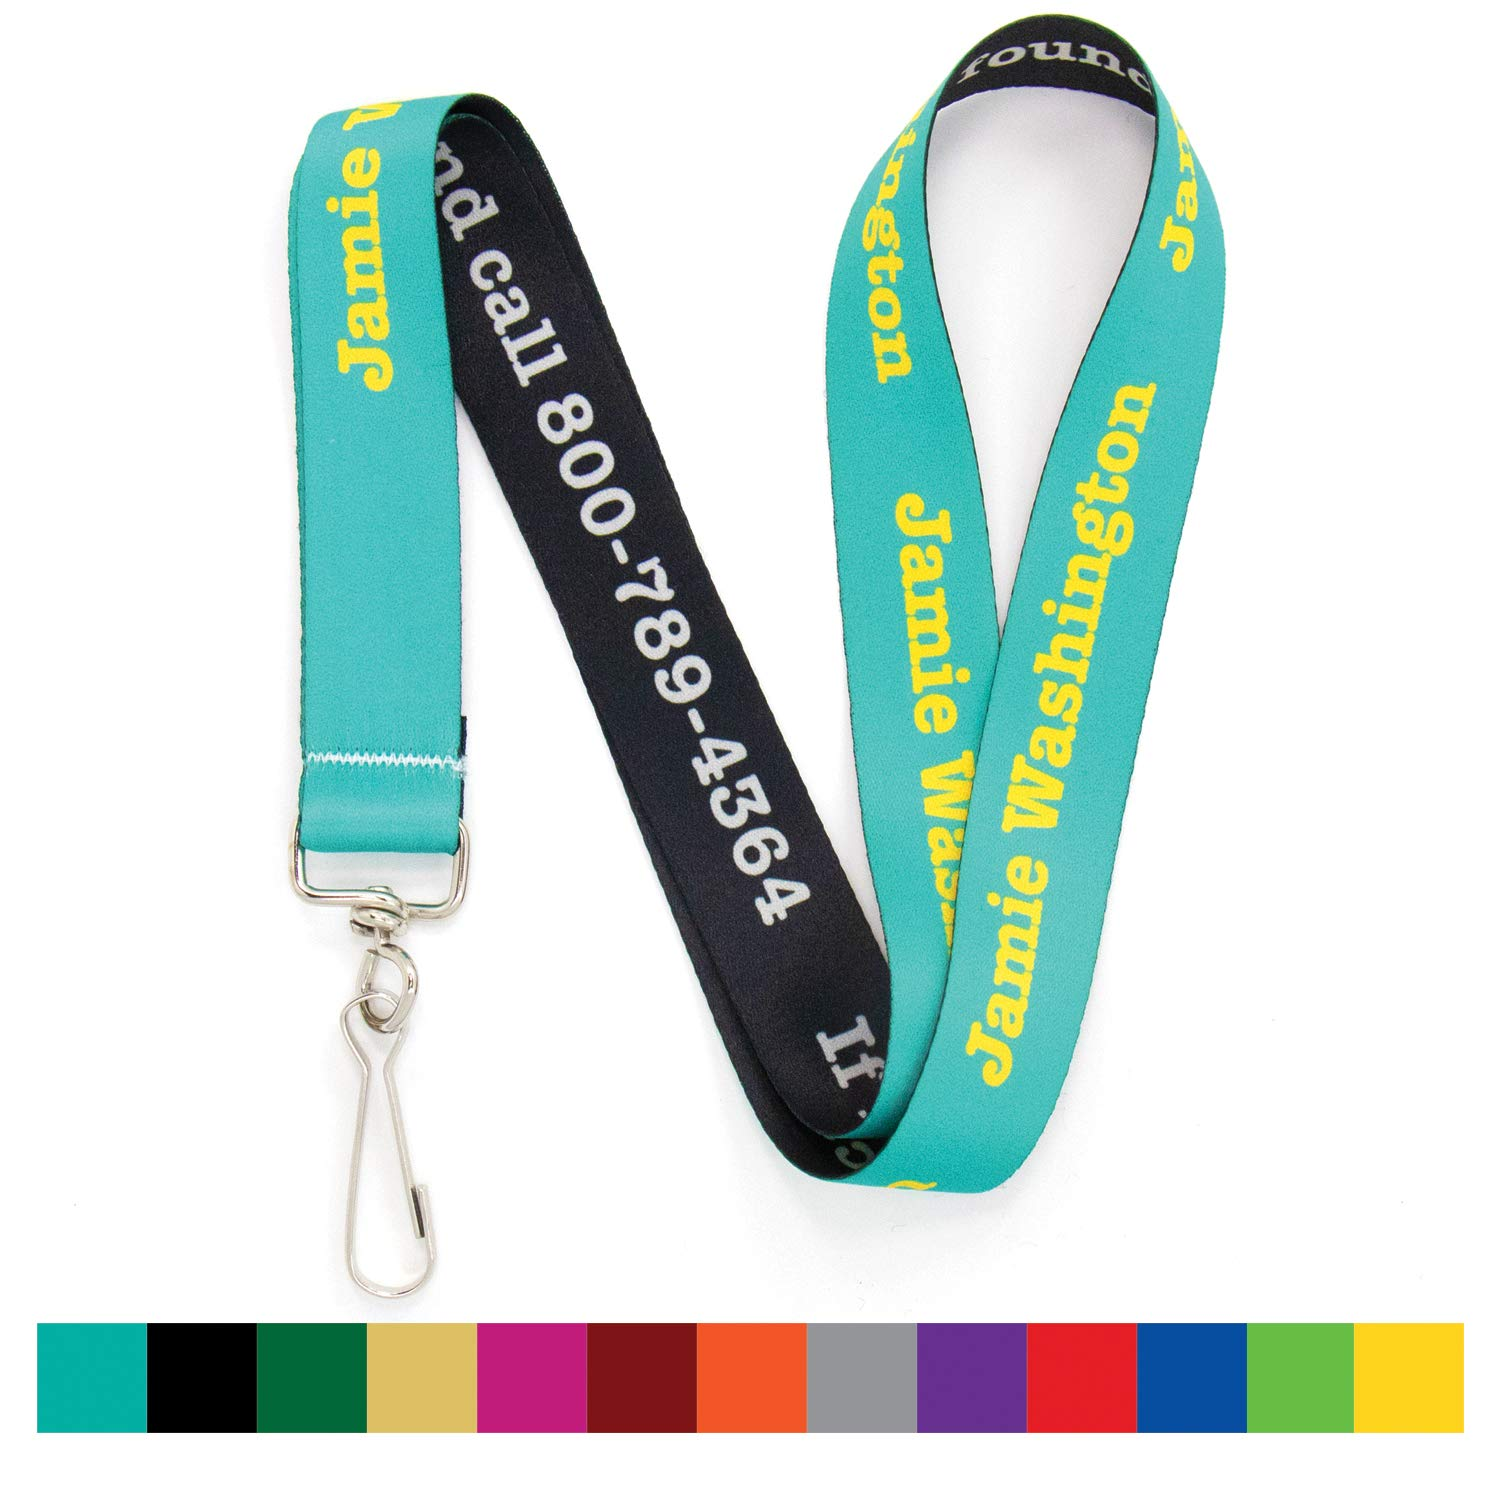 Buttonsmith Custom Solid Lanyard - Pack of 5 - Choose Background Color, Font Color, Font Style and Icon - Personalize with Your Name or Text - Made in The USA by Buttonsmith